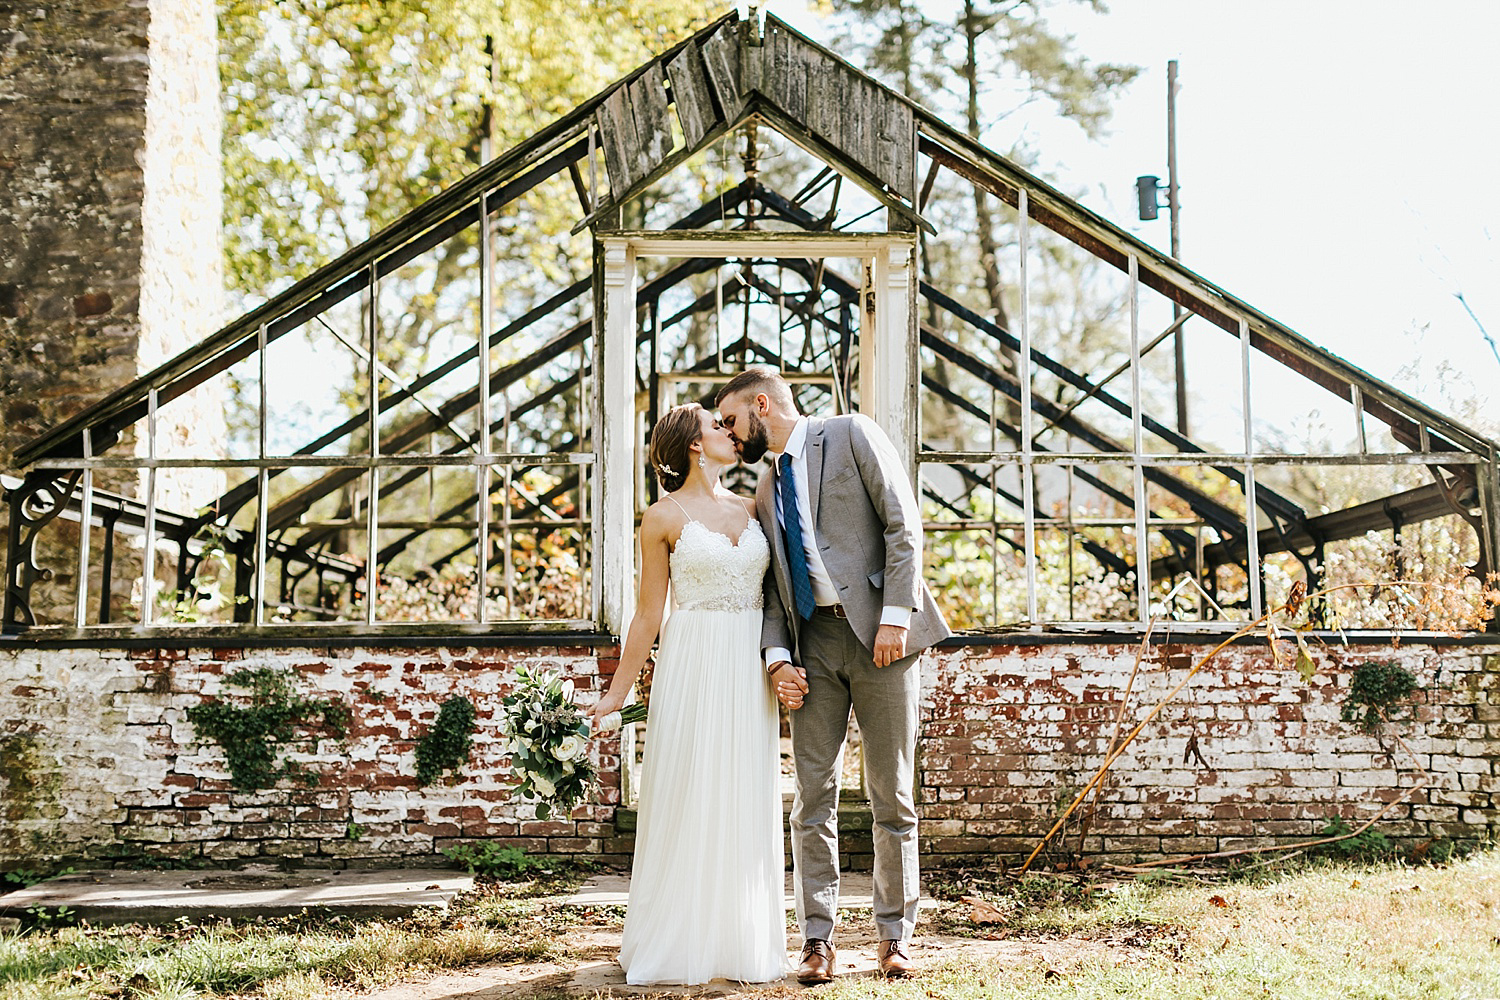 Bride and groom kissing in front of an abandoned outdoor plant nursery in philadelphia.